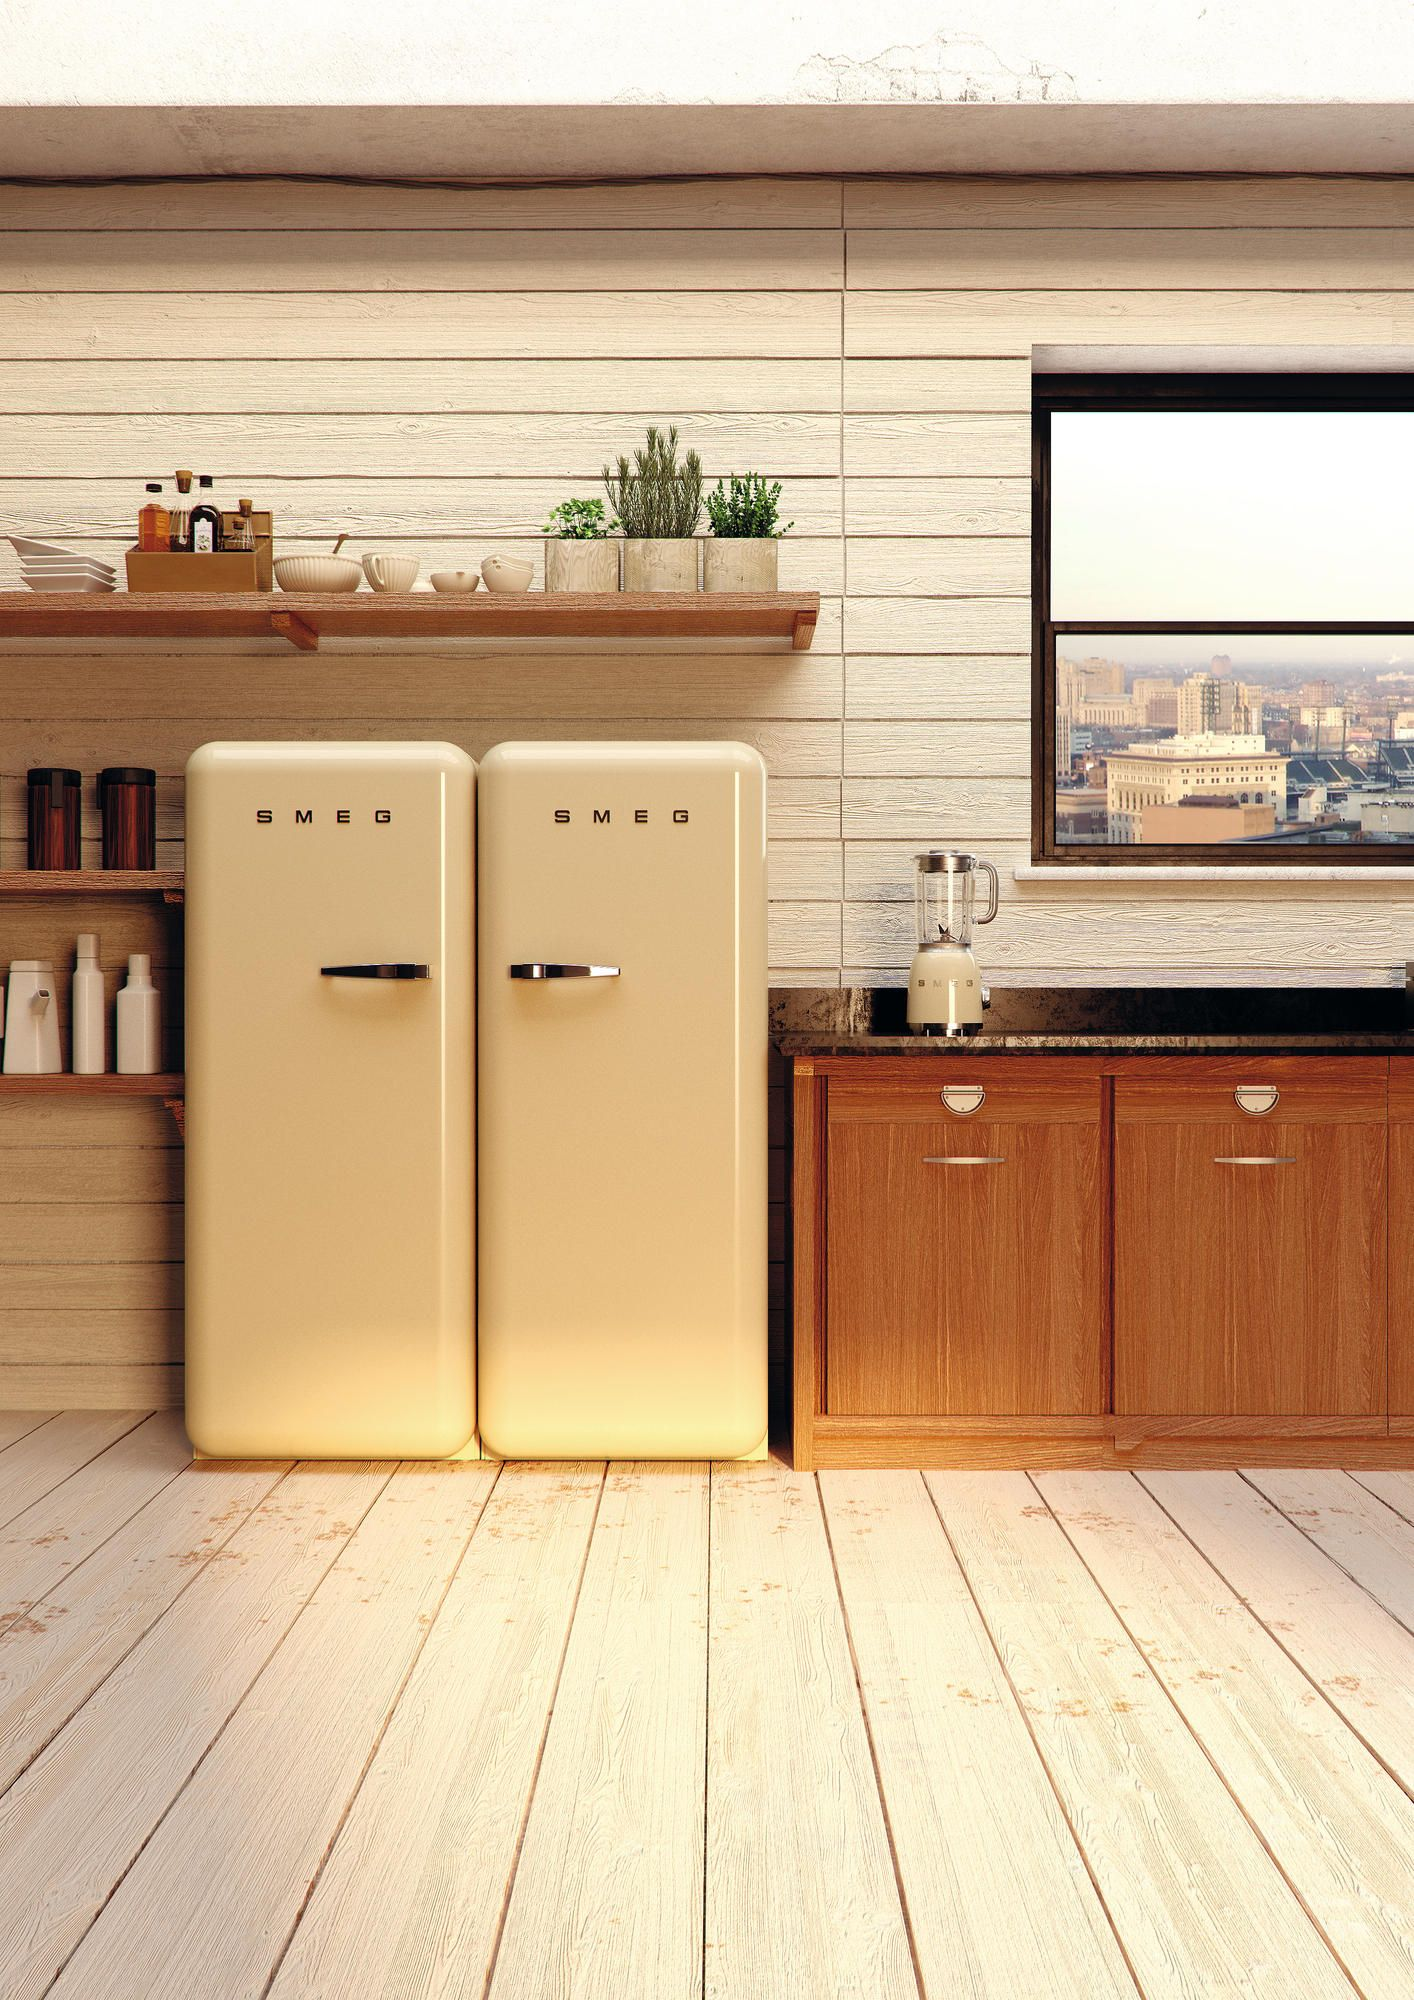 Smeg Kühlschrank Farben Retro Side By Side Fridge And Freezer From Smeg A Stunning Focal